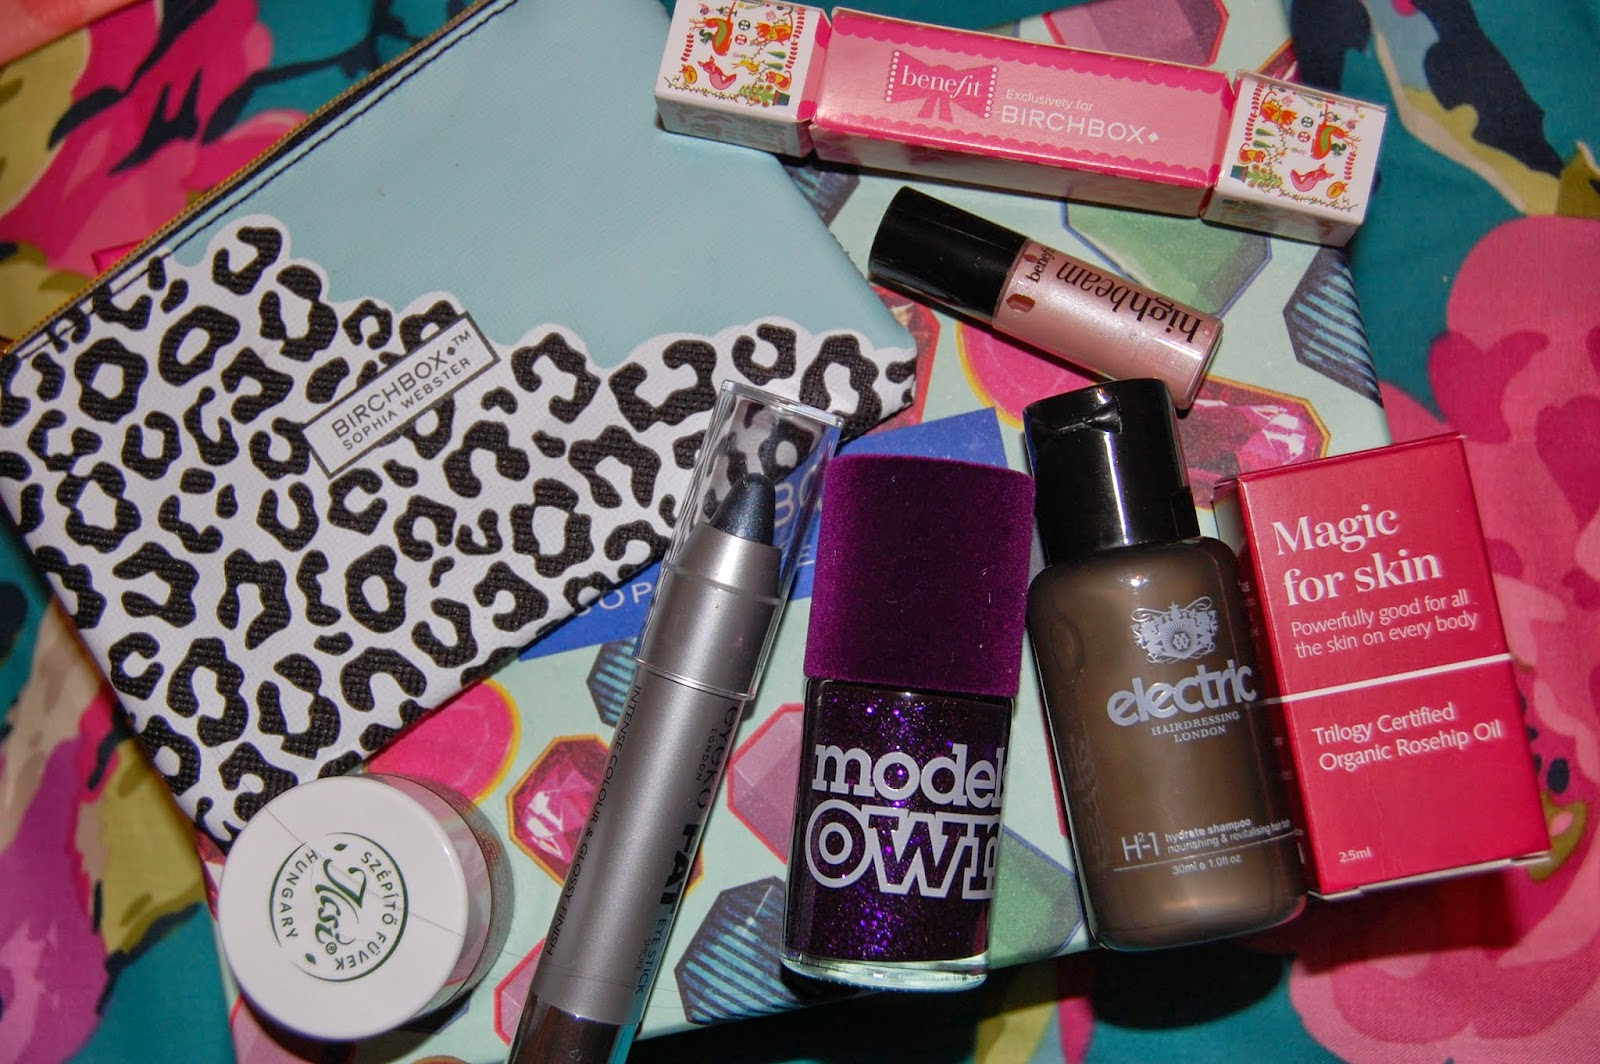 birchbox, nail varnish, models own, benefit, eyeko, trilogy, highlighter, make up, bbloggers, electric